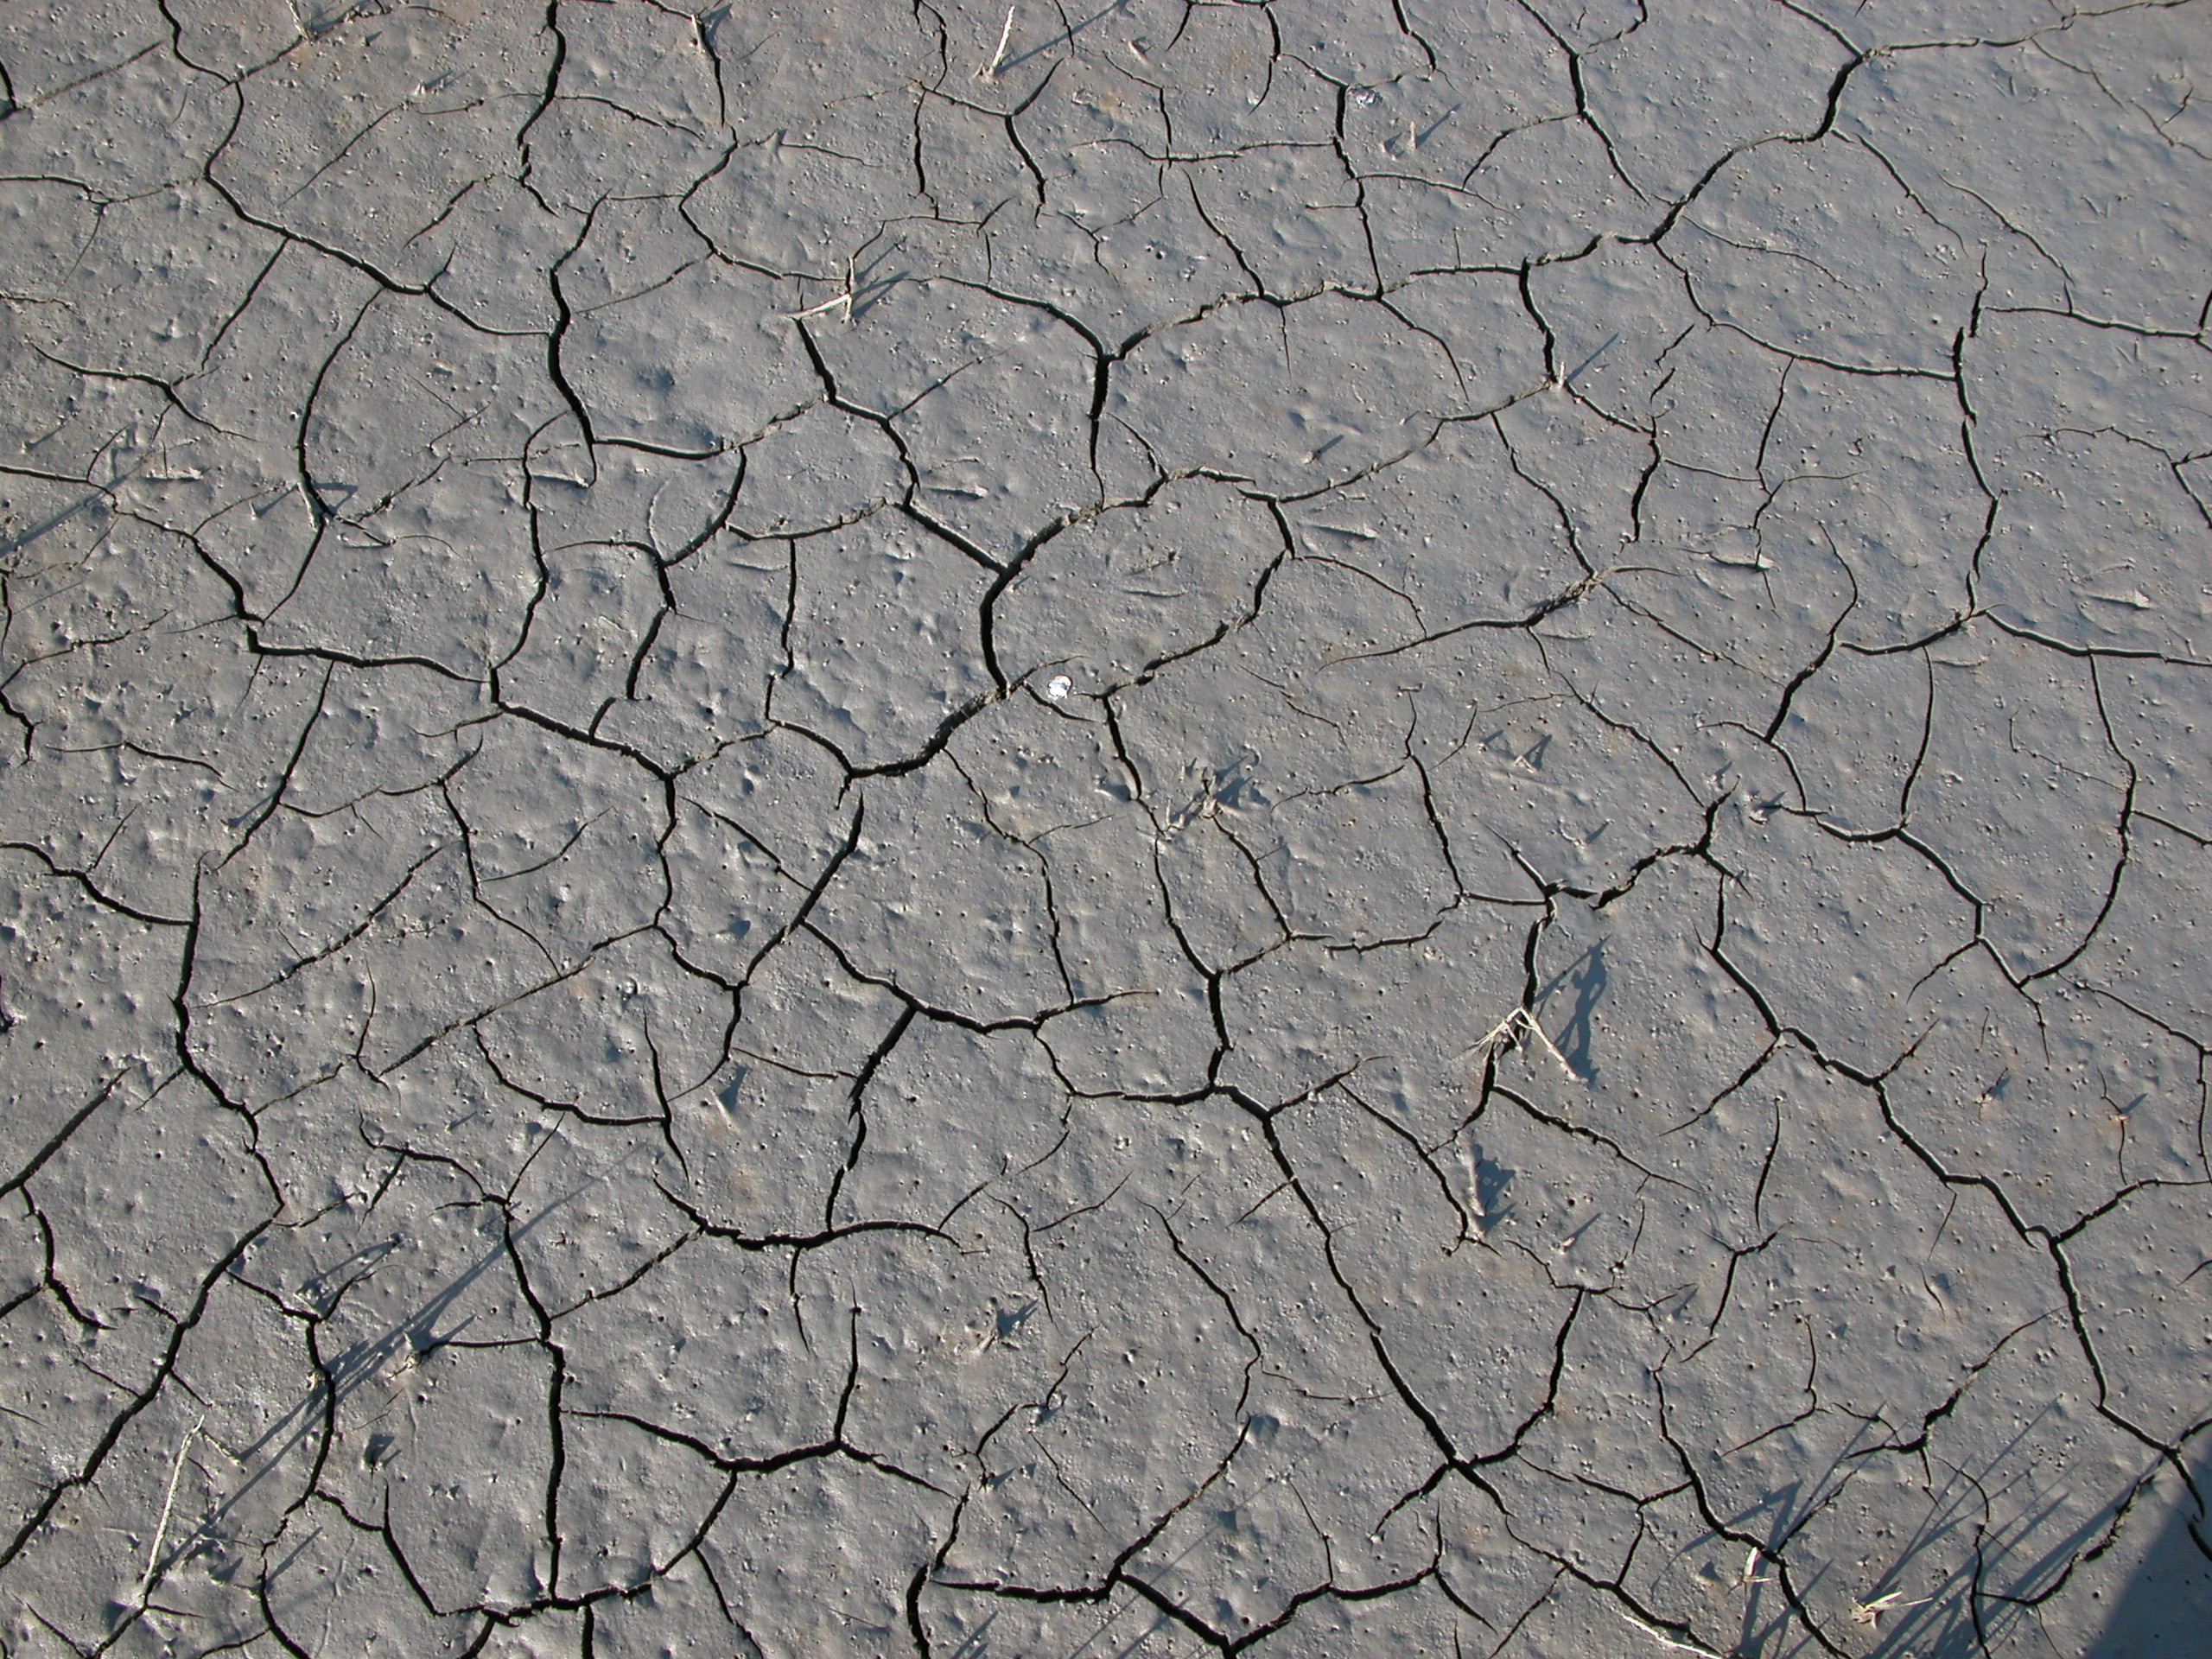 Image After Photo Cracked Dry Dried Earth Grey Soil